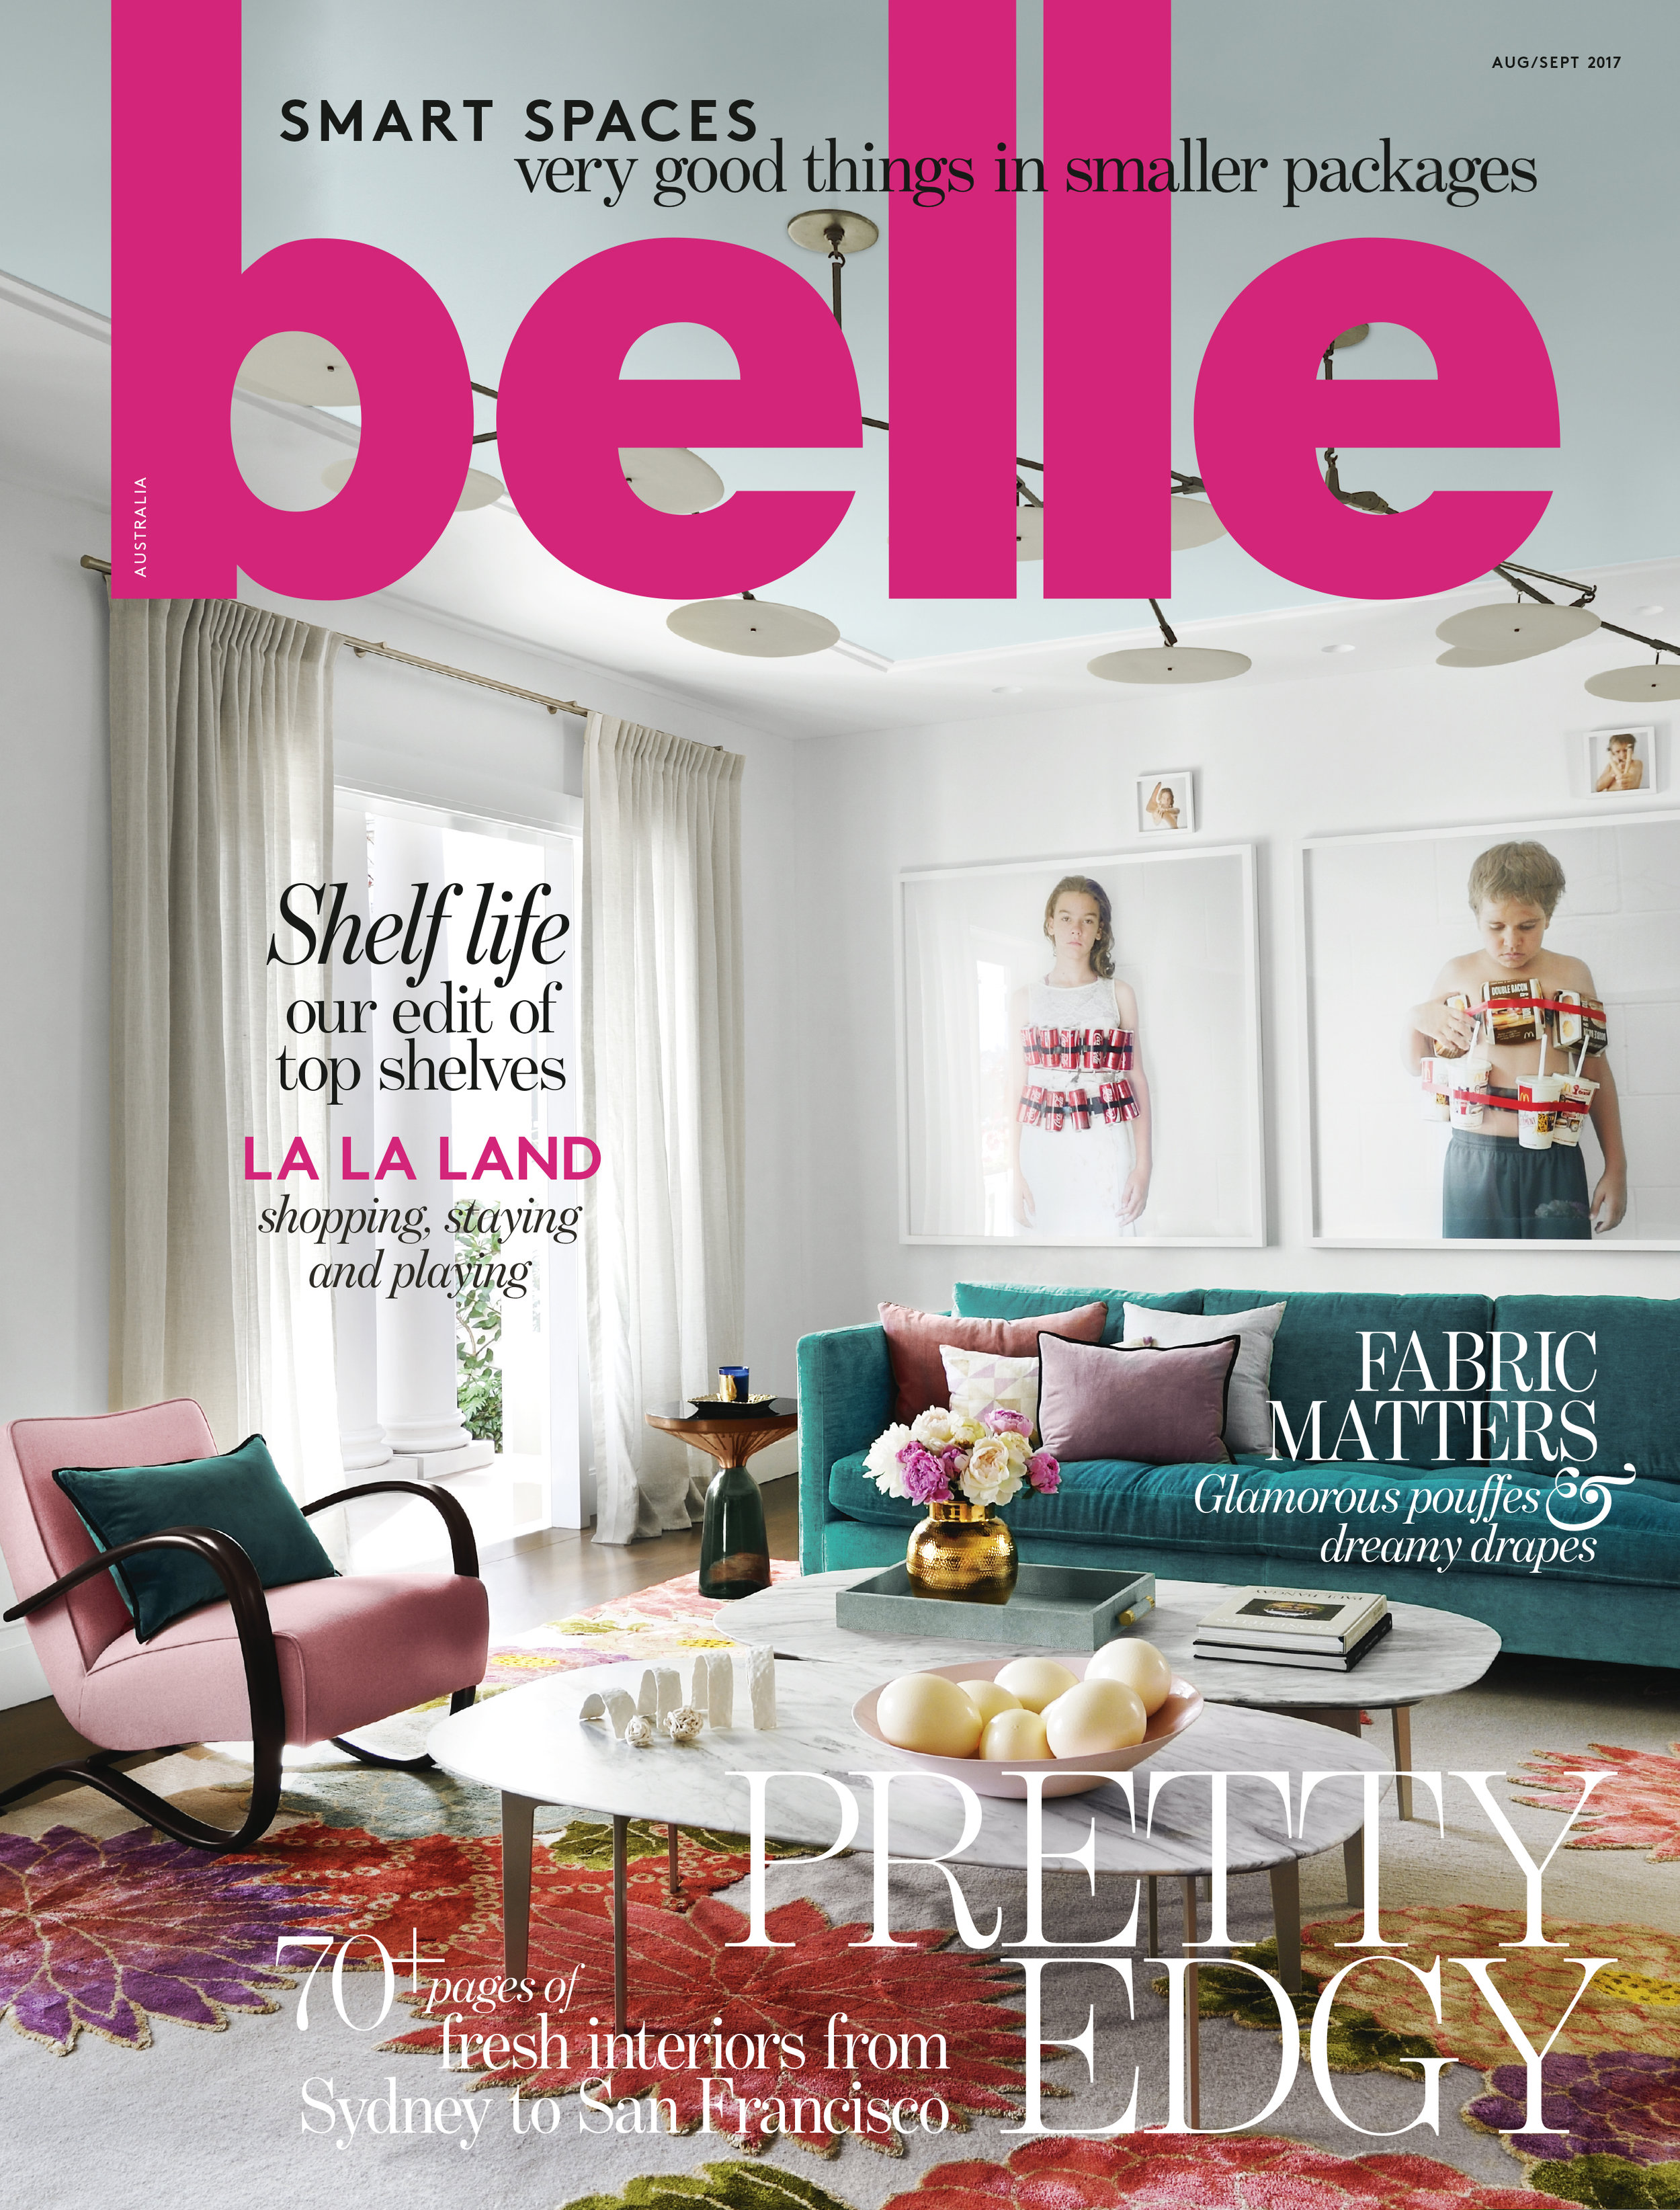 AUGUST 2017  | BELLE MAGAZINE - THE LORD DUDLEY